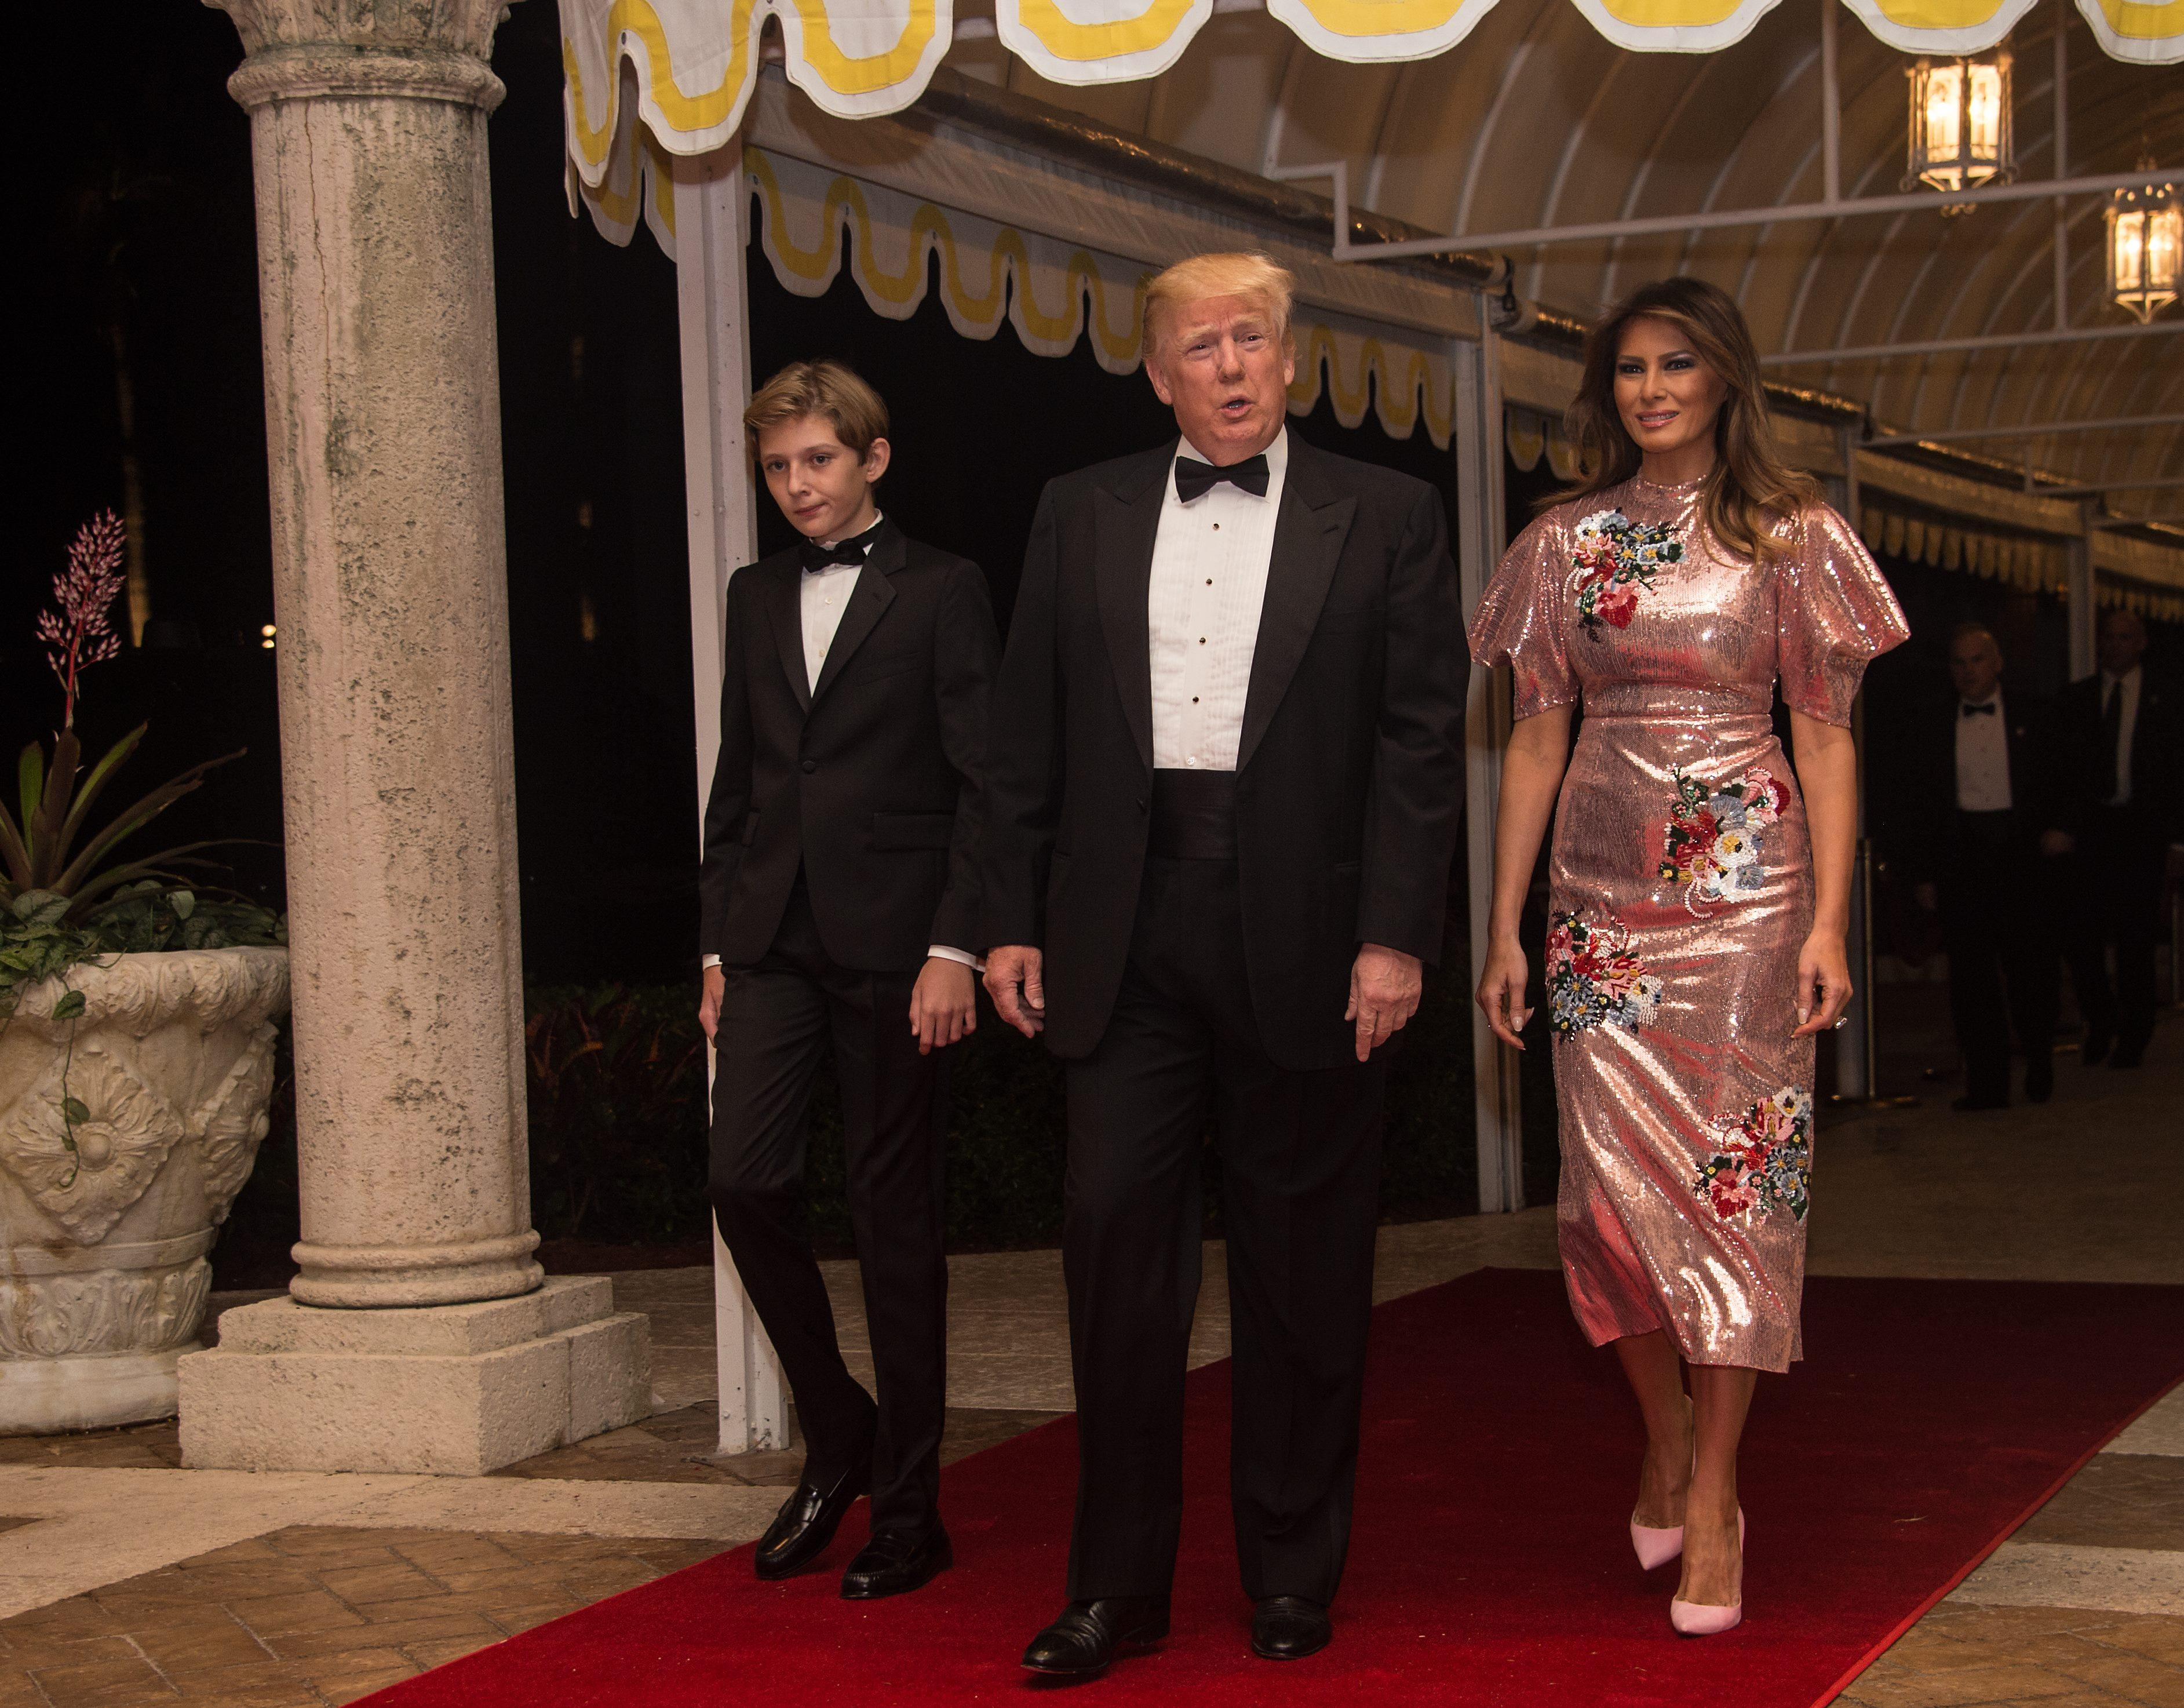 US President Donald Trump First Lady Melania And Their Son Barron Arrive For A